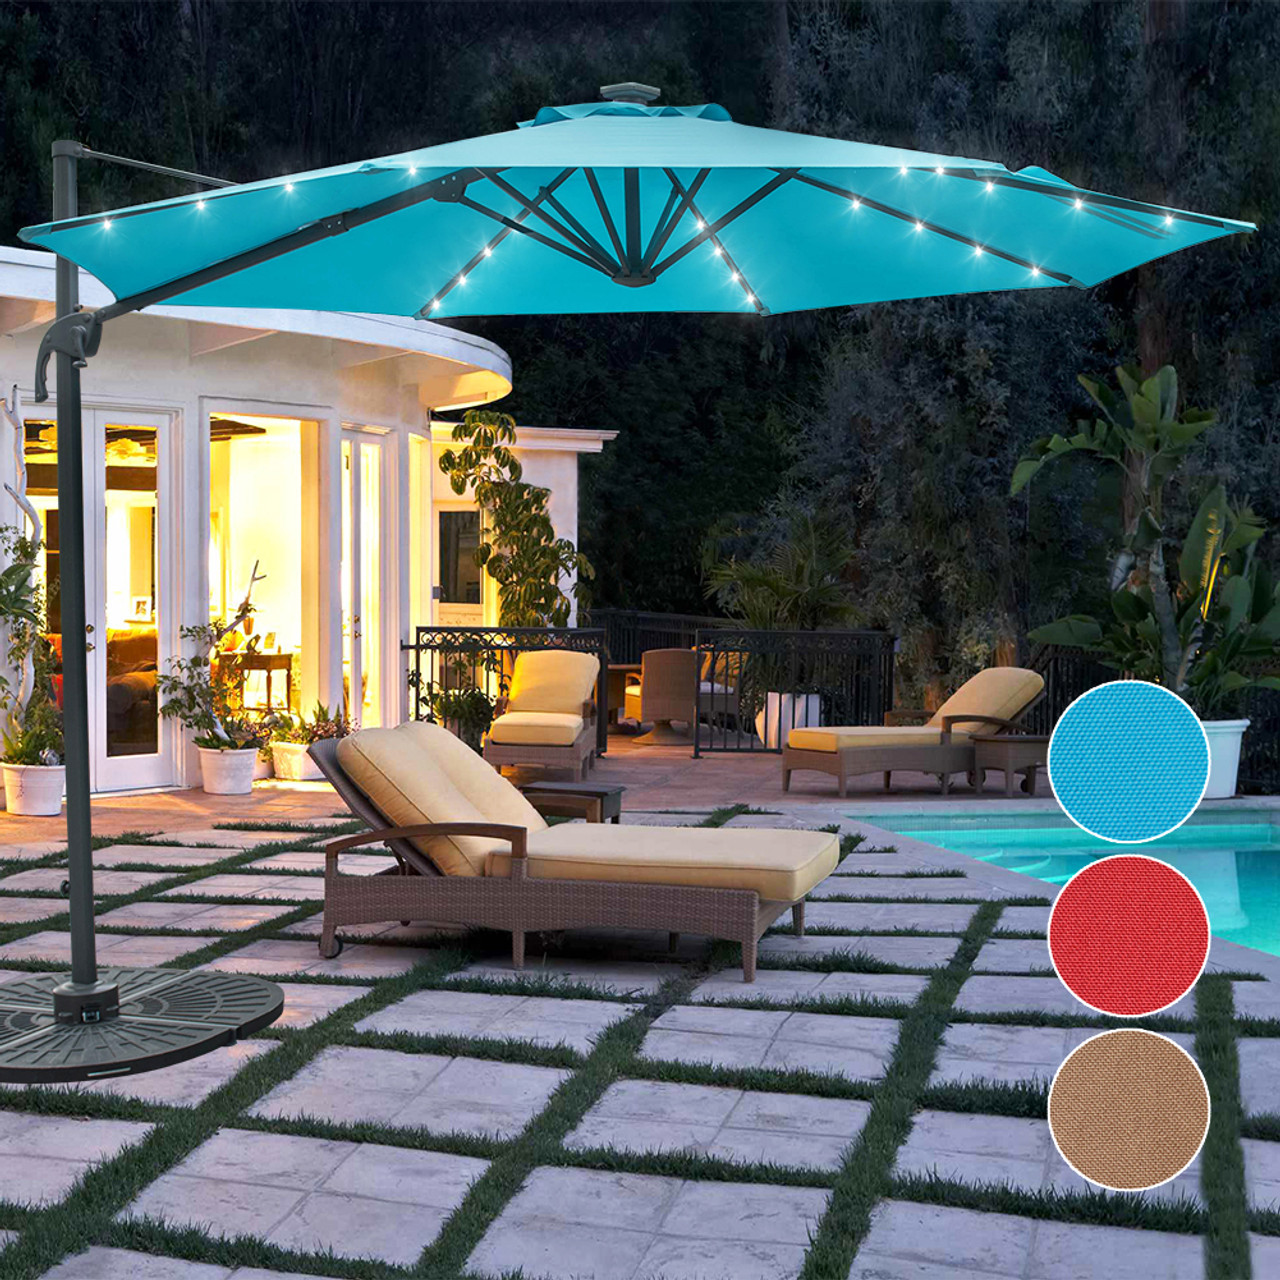 Sundale Outdoor 10FT Solar Powered 28 LED Lighted Umbrella Hanging Roma  Offset Umbrella Outdoor Patio Sun